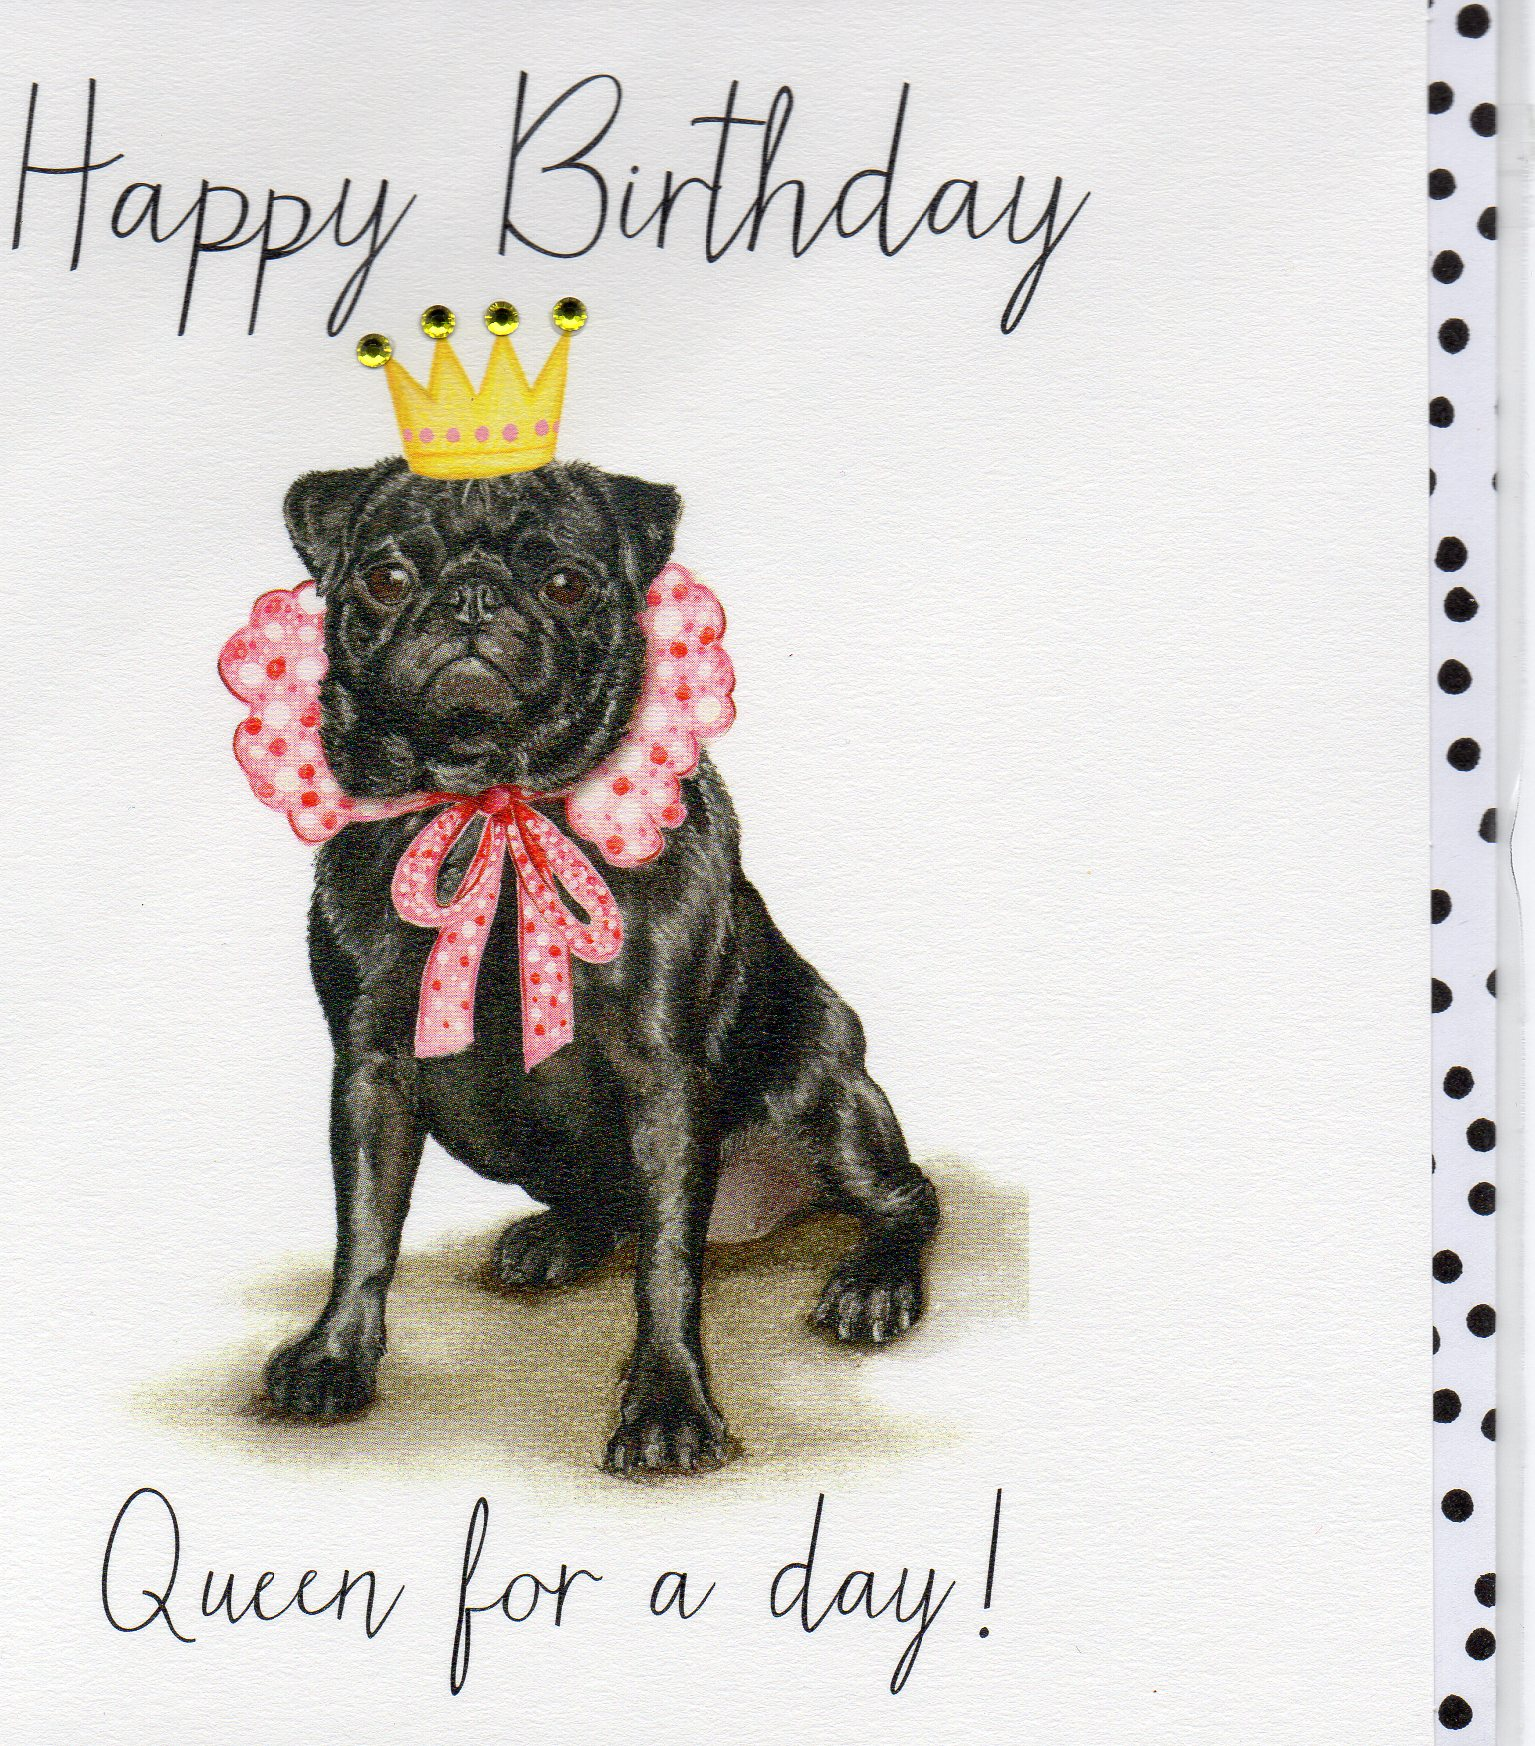 OLIVE-queen for a day bday